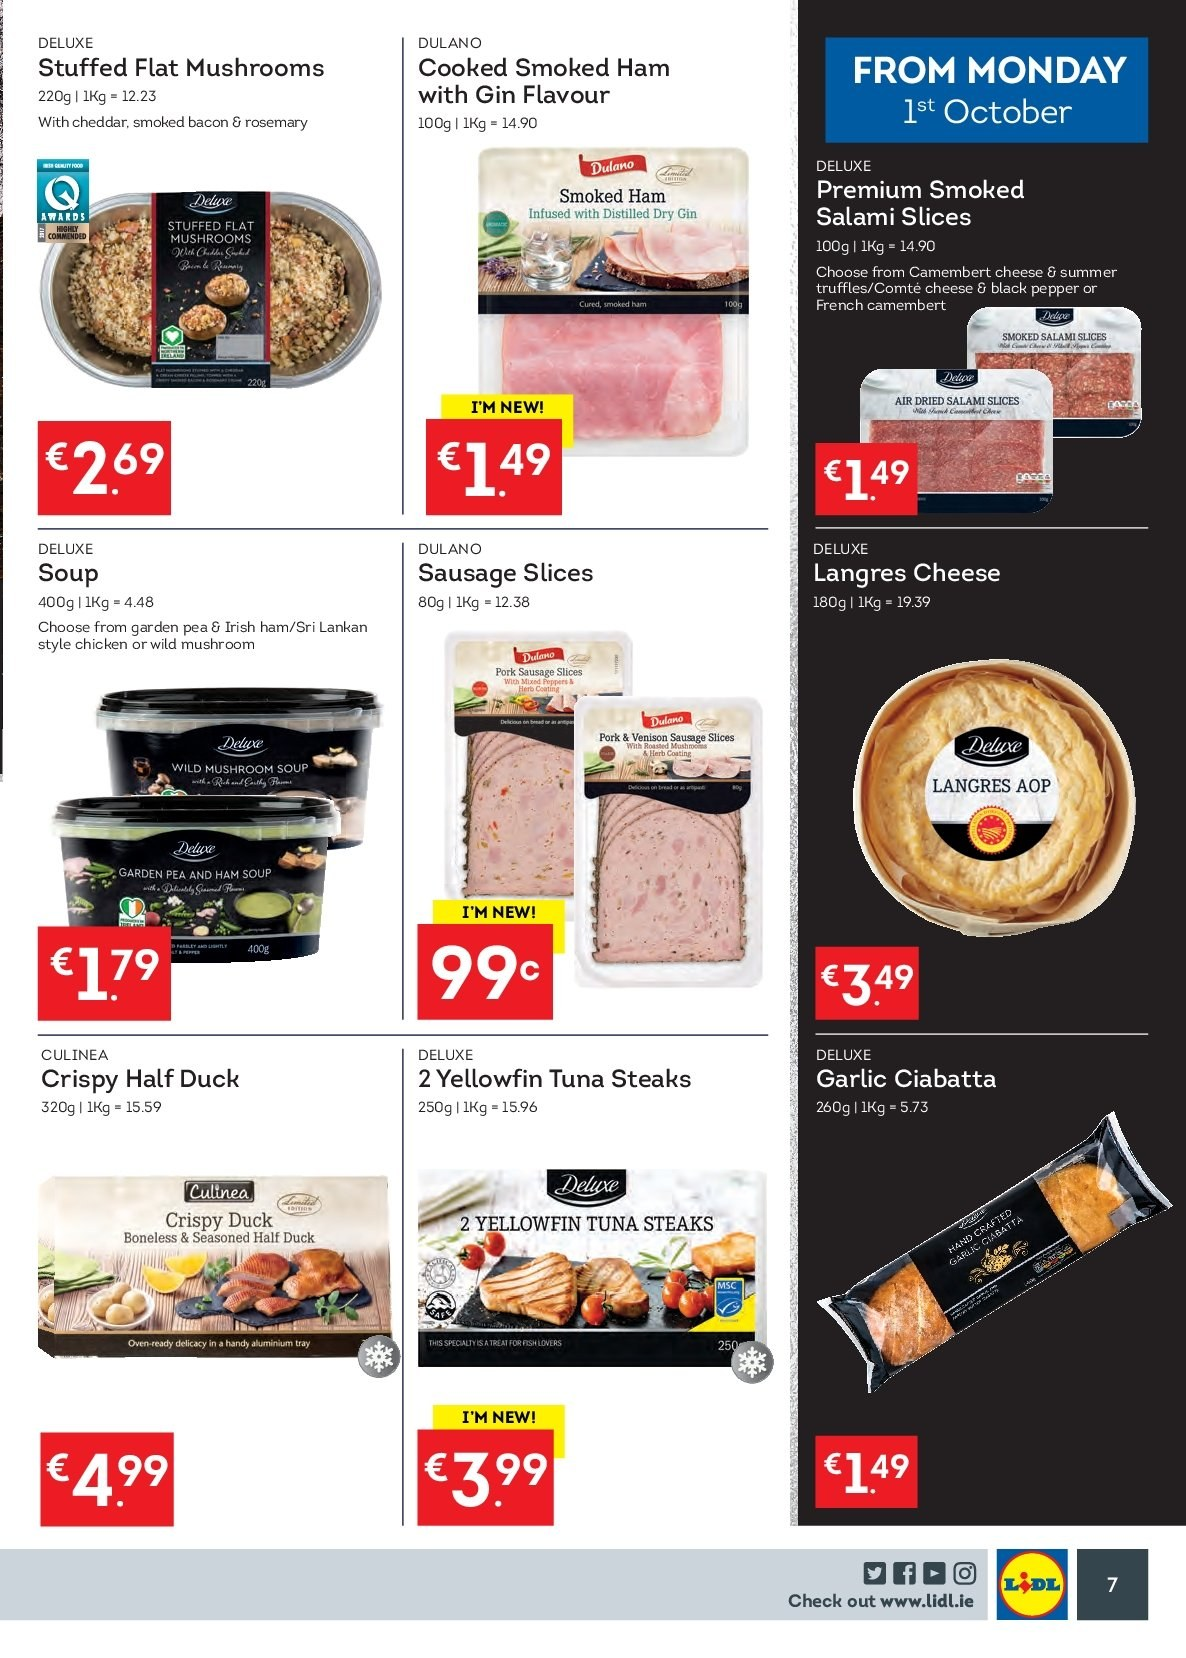 Lidl offer  - 1.10.2018 - 7.10.2018 - Sales products - mushroom, flat mushrooms, ciabatta, garlic, peppers, tuna, fish, mushroom soup, soup, bacon, salami, ham, smoked ham, sausage, sausage slices, camembert, truffles, rosemary, black pepper, pork sausage, gin, chicken, duck, steak, tray. Page 7.